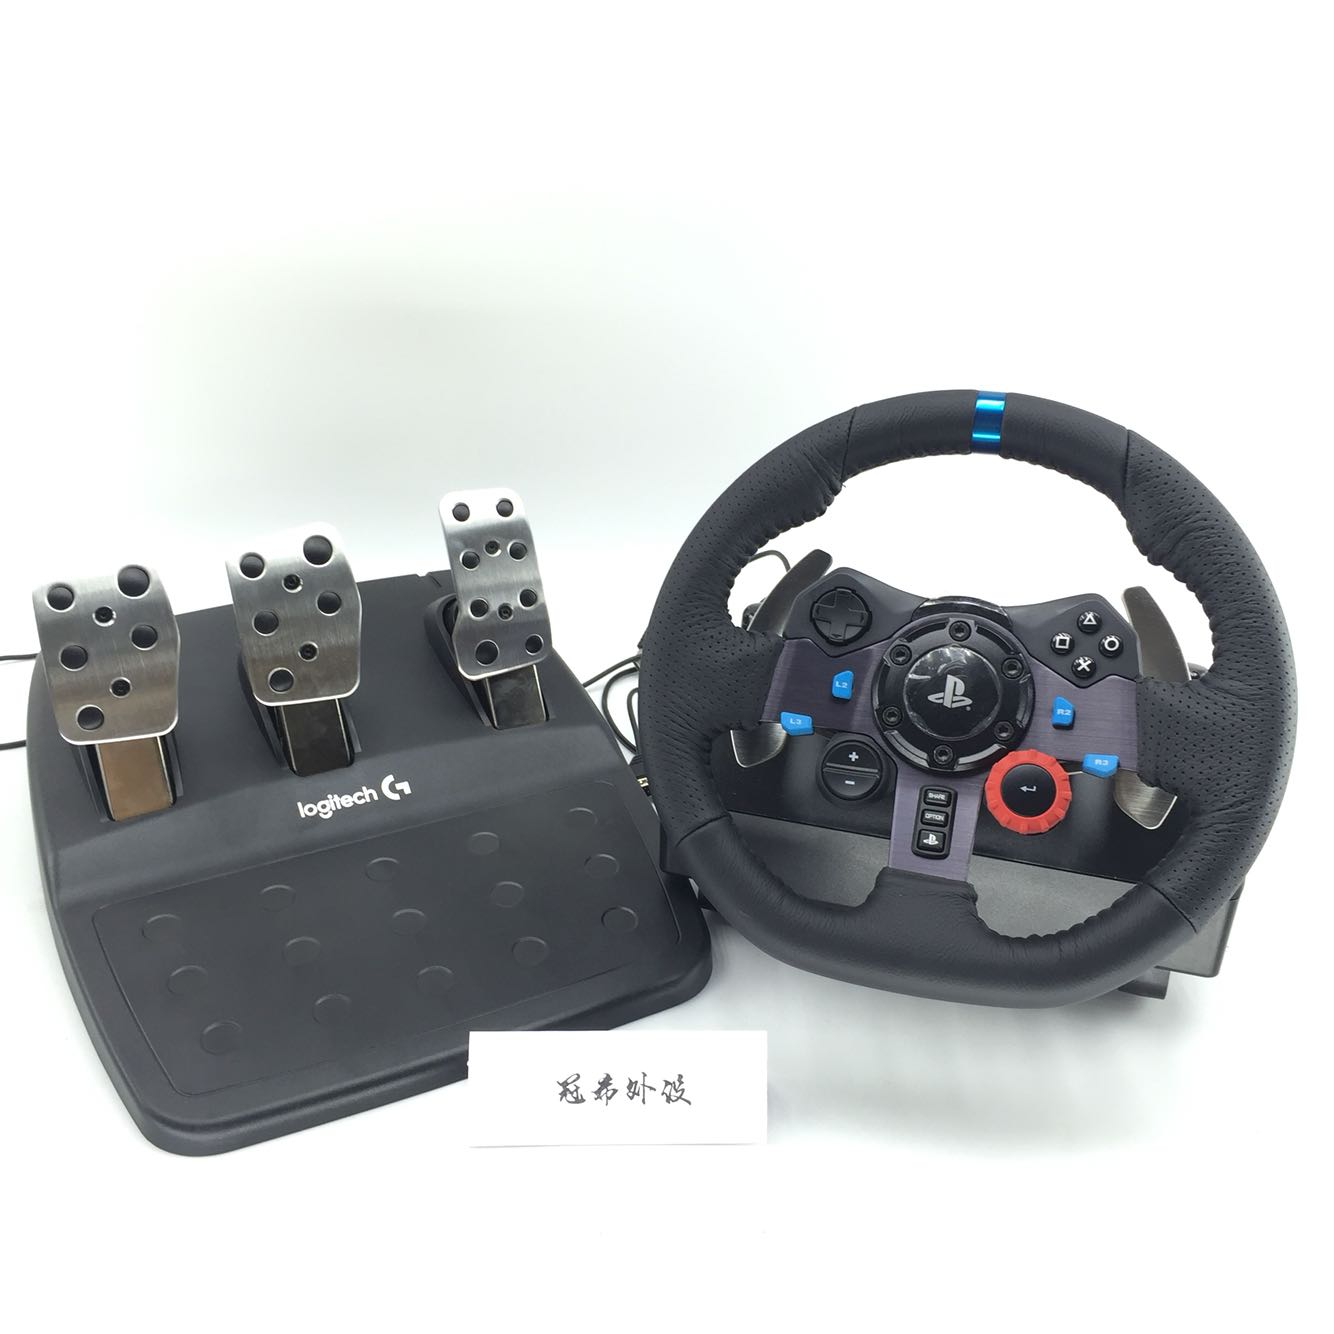 5e8c7be1665 Crown Greek peripheral Logitech g29 g920 Xbox ps3 ps4 computer game  steering wheel G27 upgrade